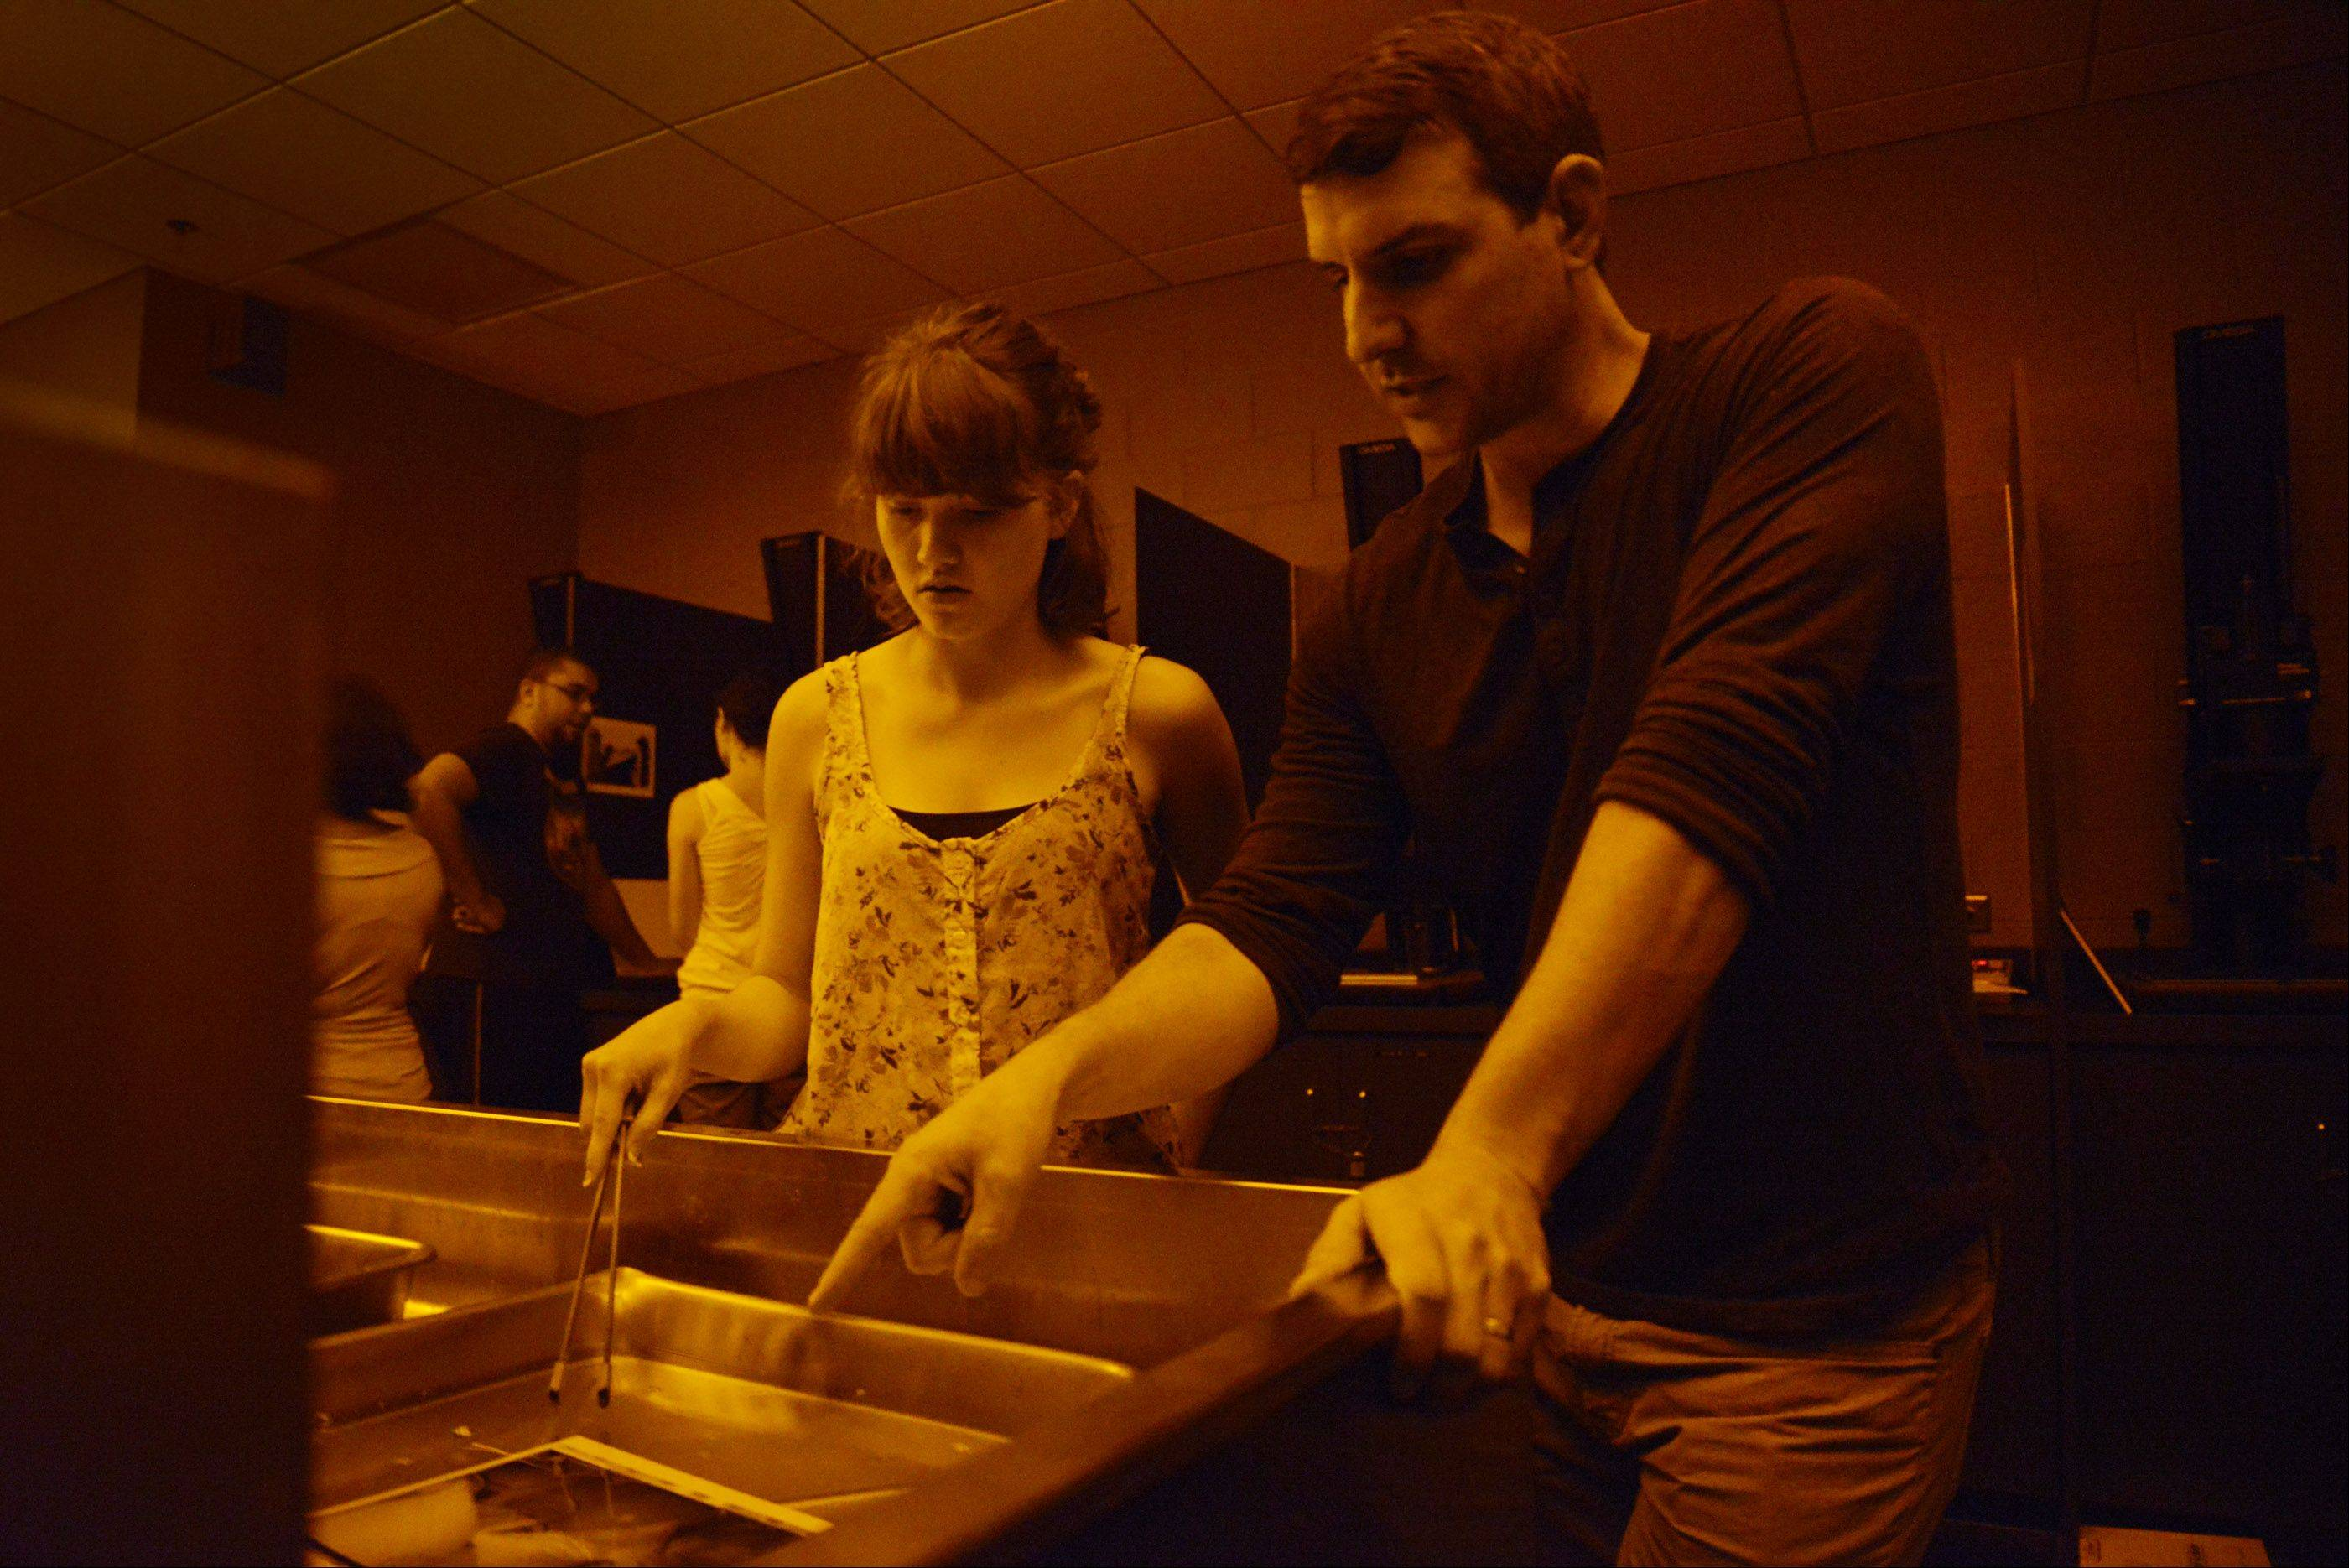 Travis Linville, assistant professor of photography, works with student Jessica Cannon in the Elgin Community College darkroom.